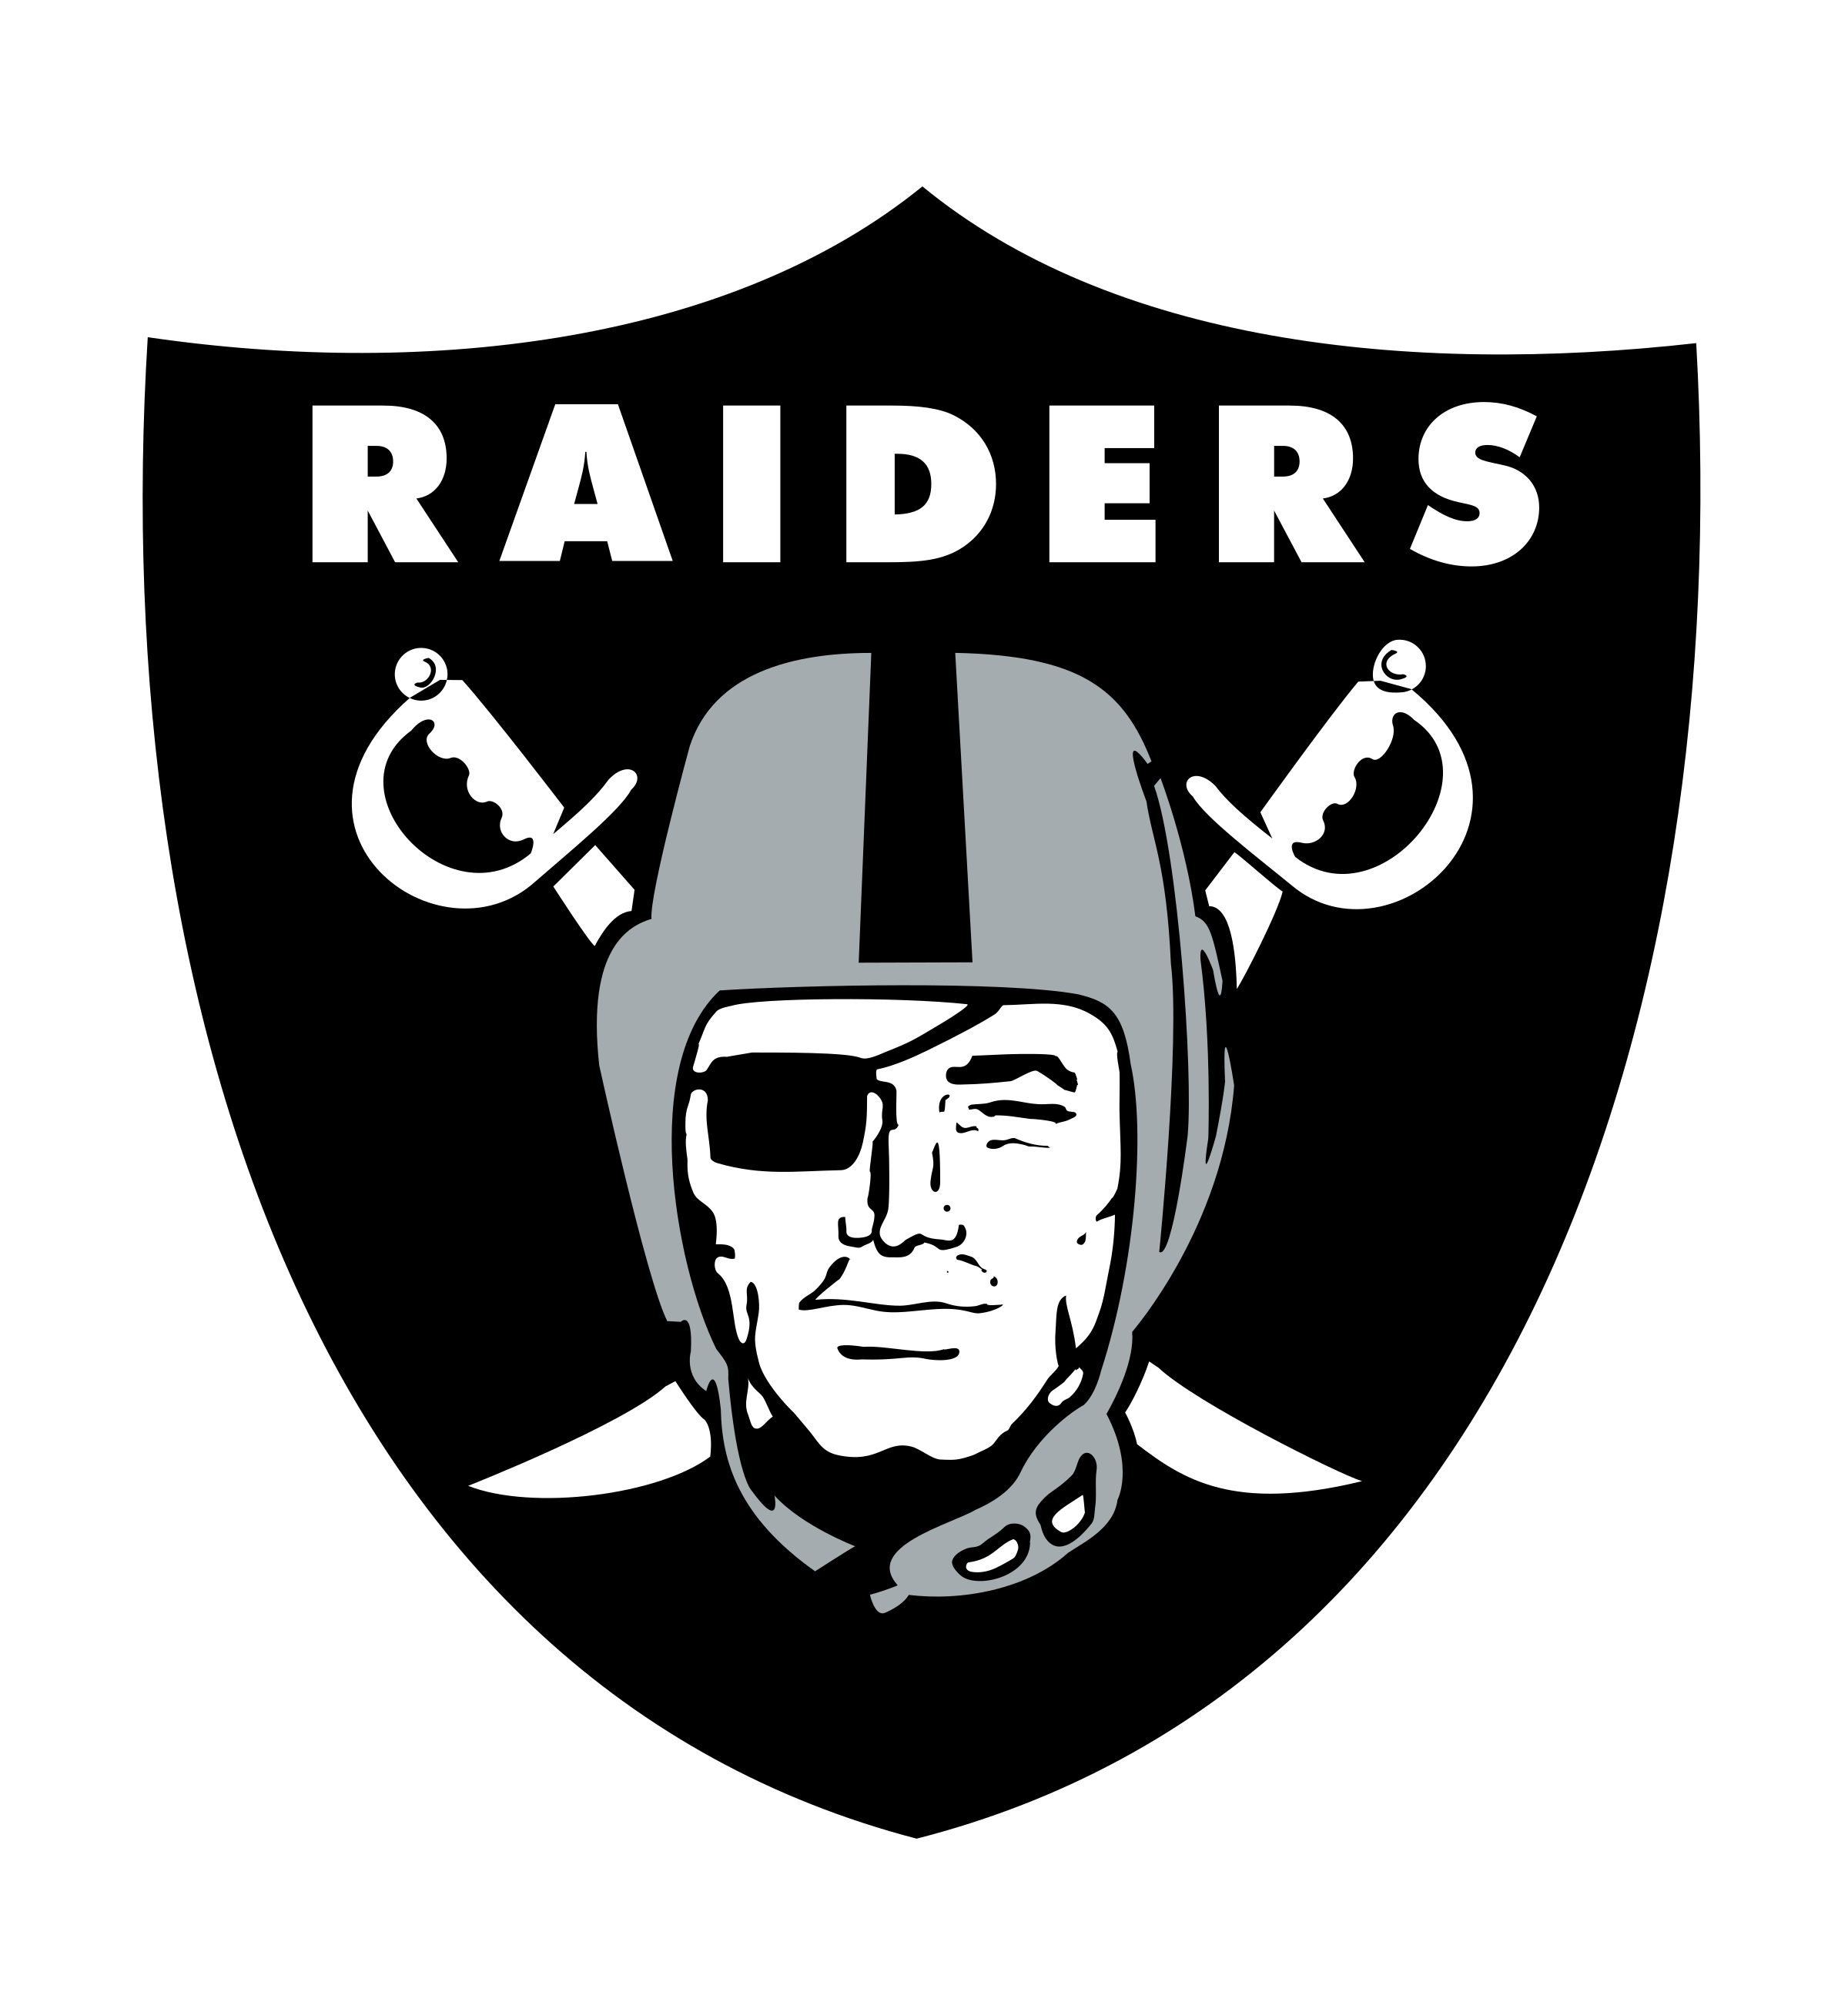 Oakland Raiders Logo PNG Transparent & SVG Vector.